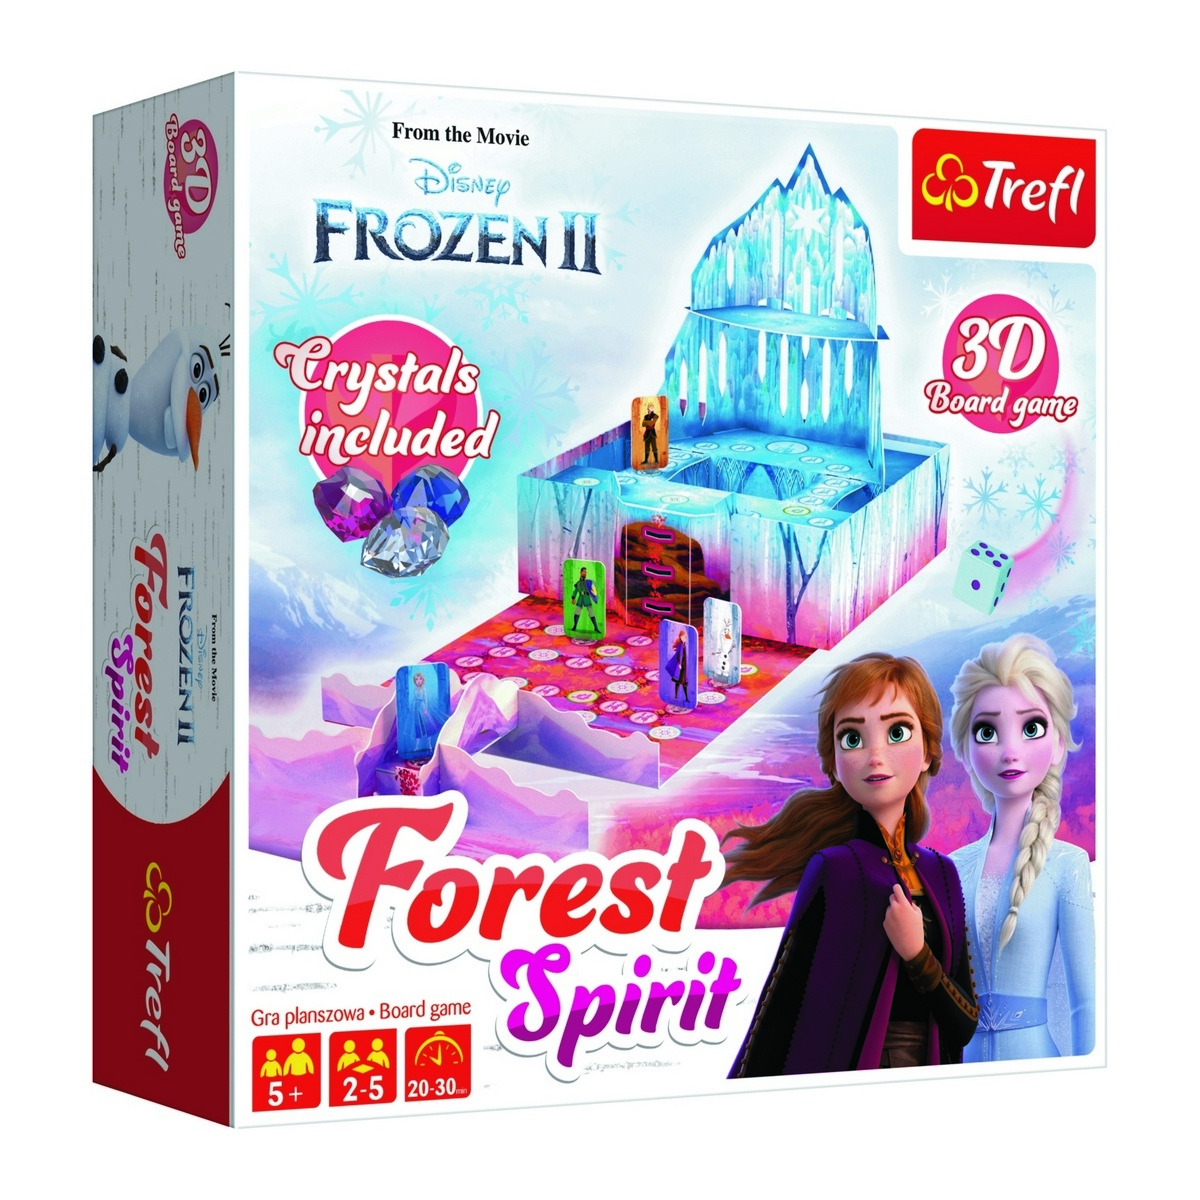 Trefl Frozen II Forest Spirit